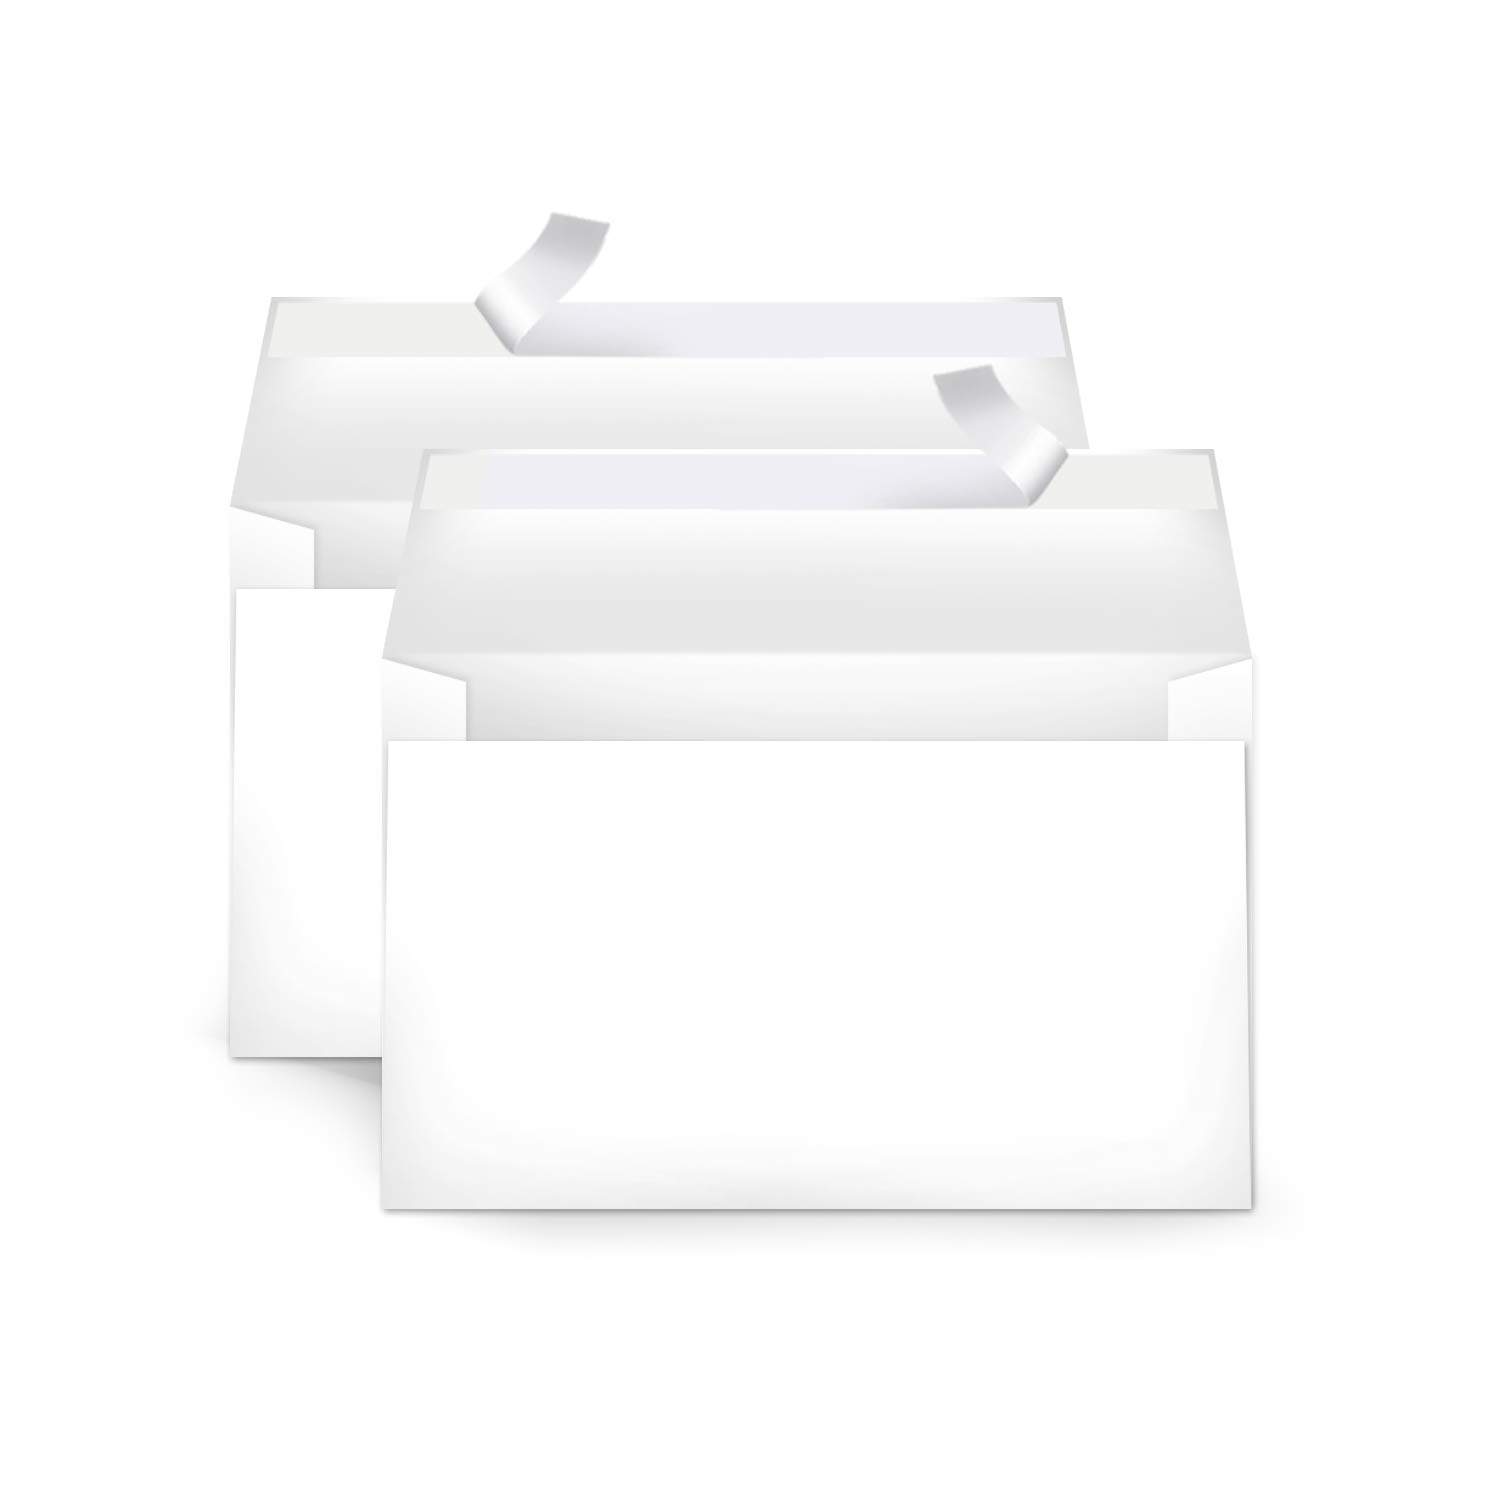 Amazon Basics A9 Blank Invitation Envelopes with Peel & Seal, 5-3/4 x 8-3/4 Inches, White, 100 Count